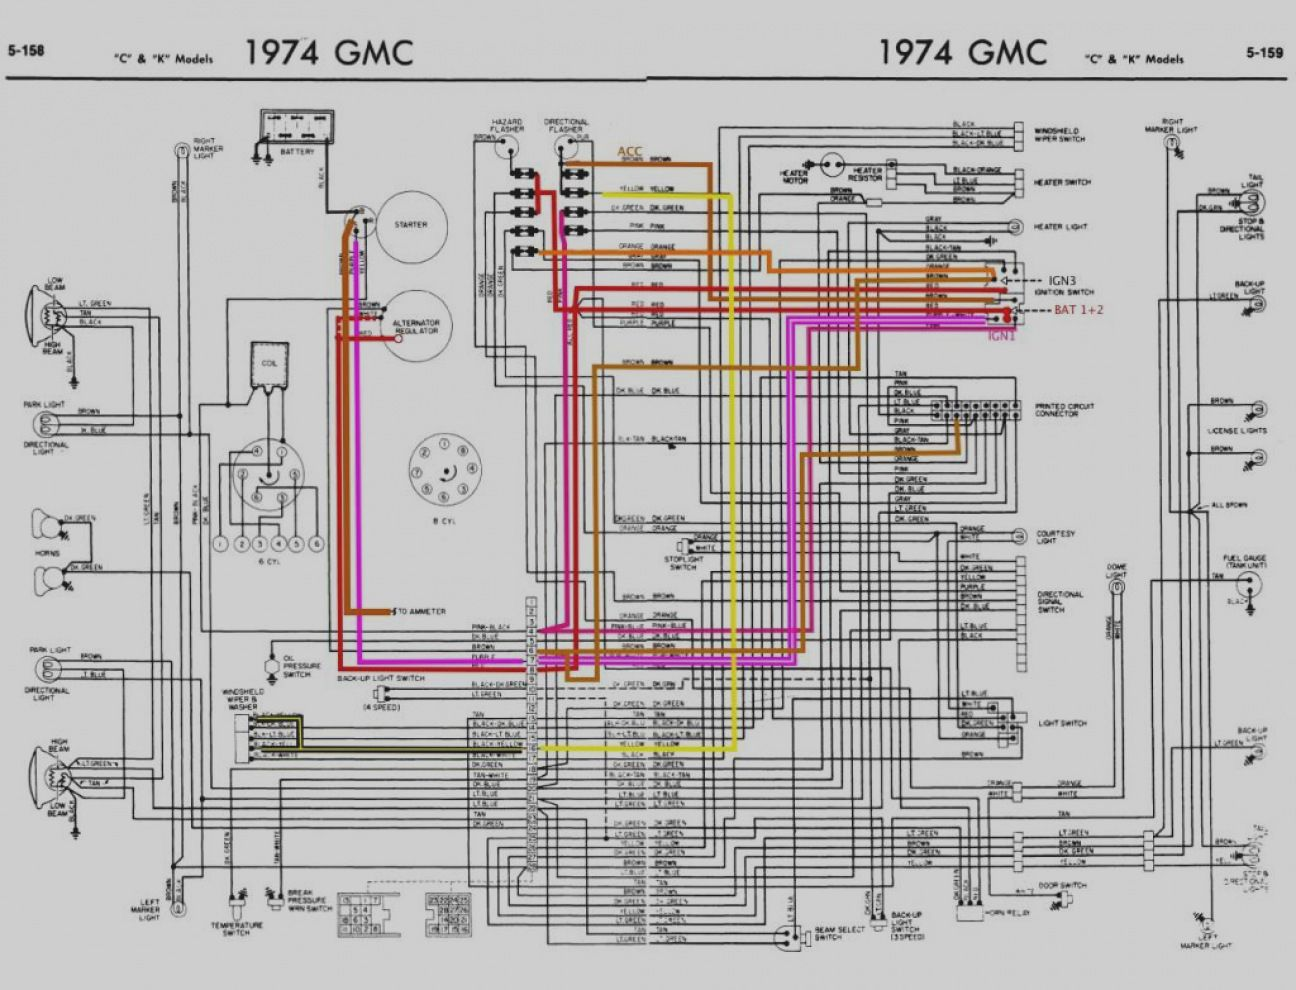 winnebago wiring diagrams wiring diagram forward 1973 winnebago wiring diagram manual of wiring diagram 1973 winnebago [ 1296 x 990 Pixel ]